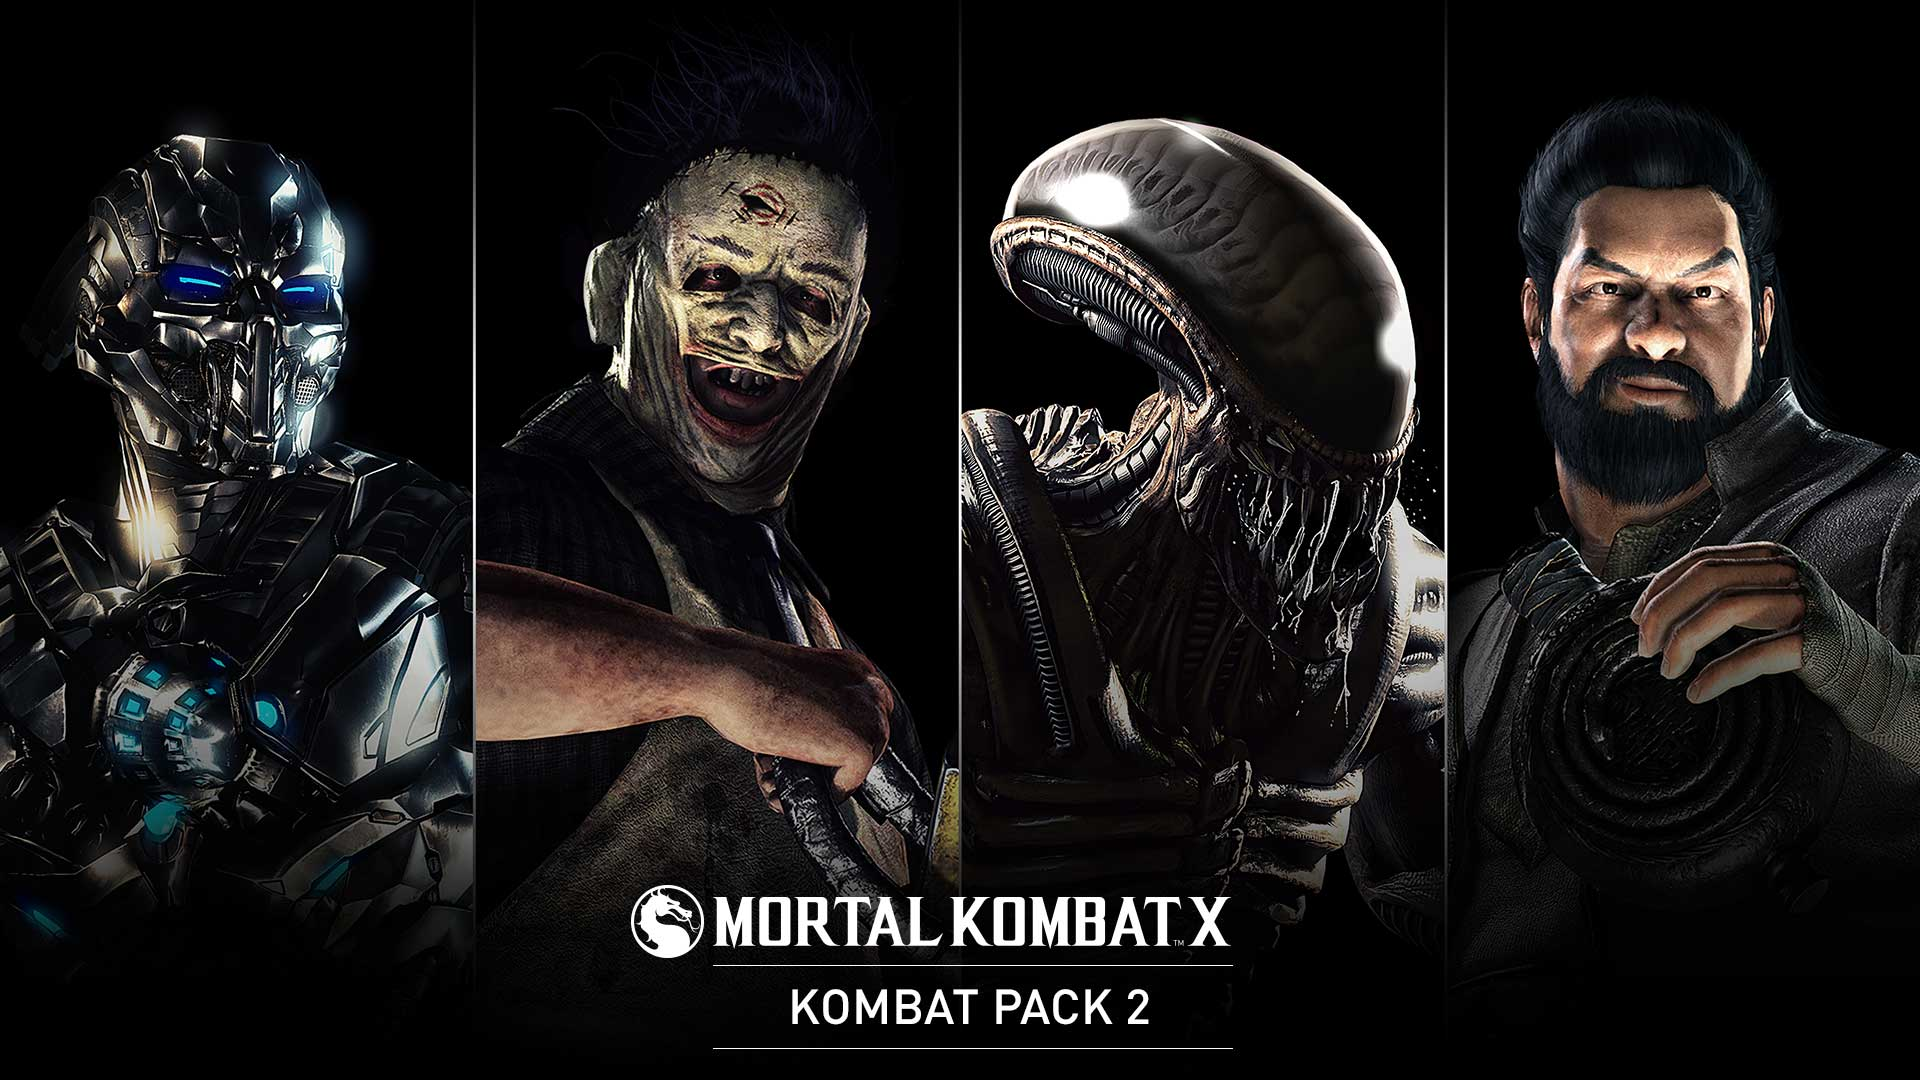 Mortal Kombat X: Kombat Pack 2 (Steam)Region Free